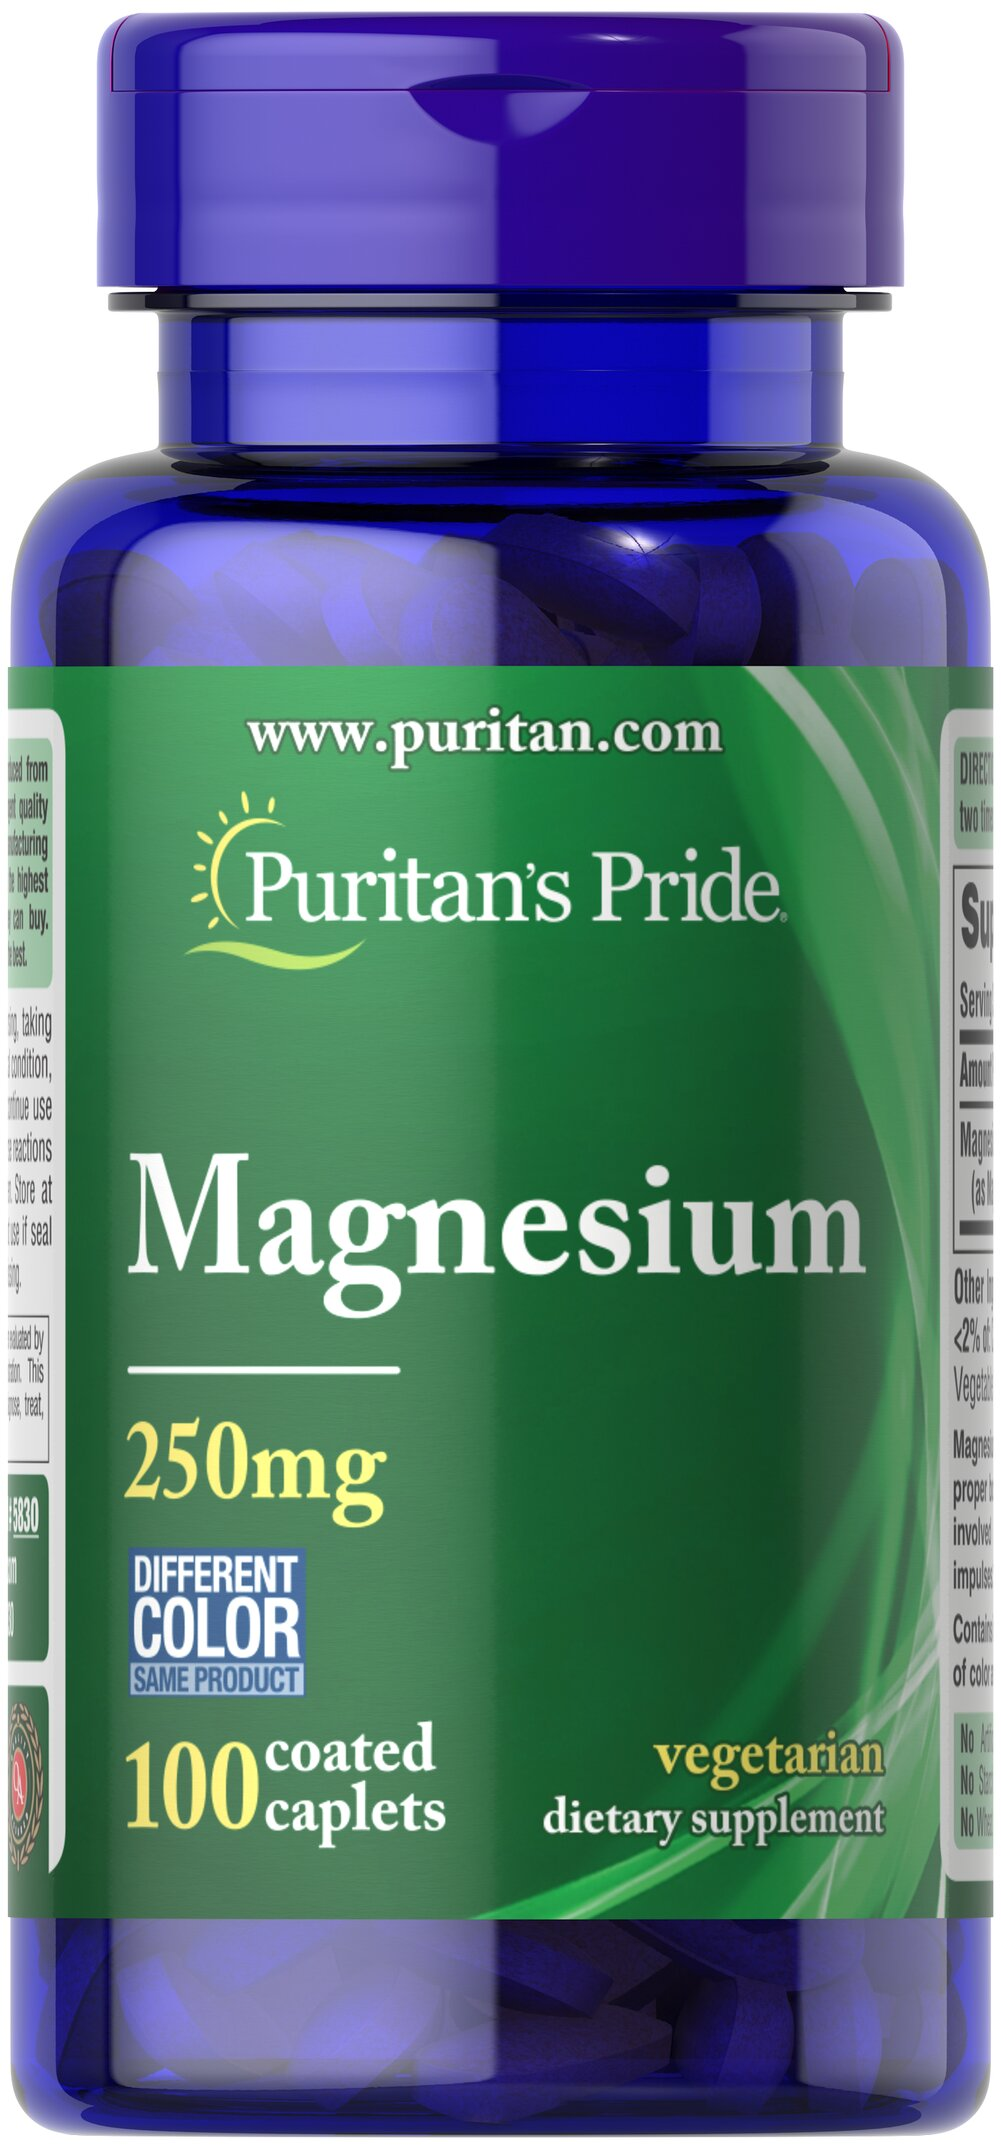 Magnesium 250 mg <p>Magnesium offers another option, besides Calcium, for supporting bone health.** Magnesium plays an essential role in maintaining bone mineralization, and is also involved in muscle contractions and nerve impulses.** Adults can take one caplet daily with a meal.</p> 100 Caplets 250 mg $8.99